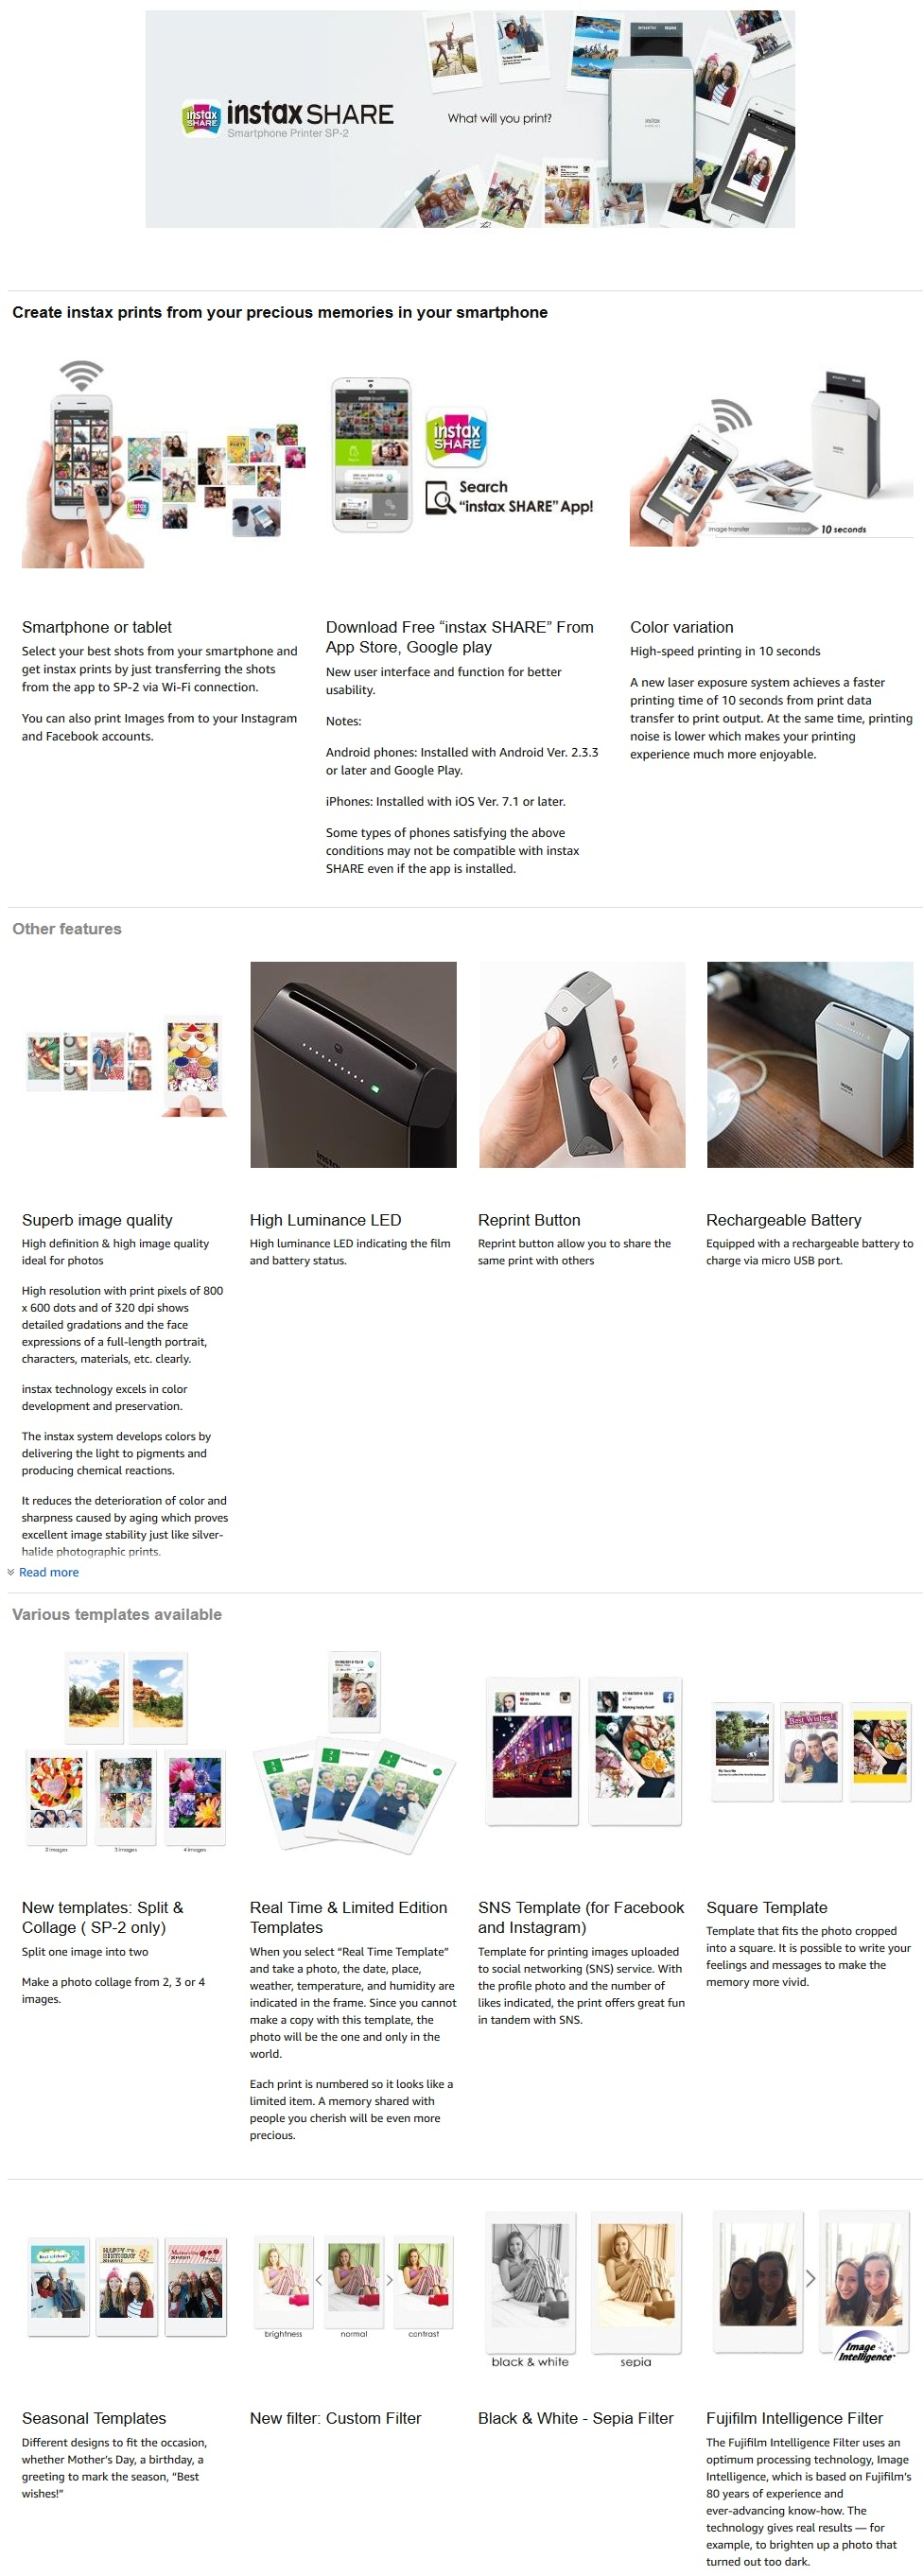 Specifications Of Fujifilm NEW INSTAX SHARE SP 2 Smart Phone Printer